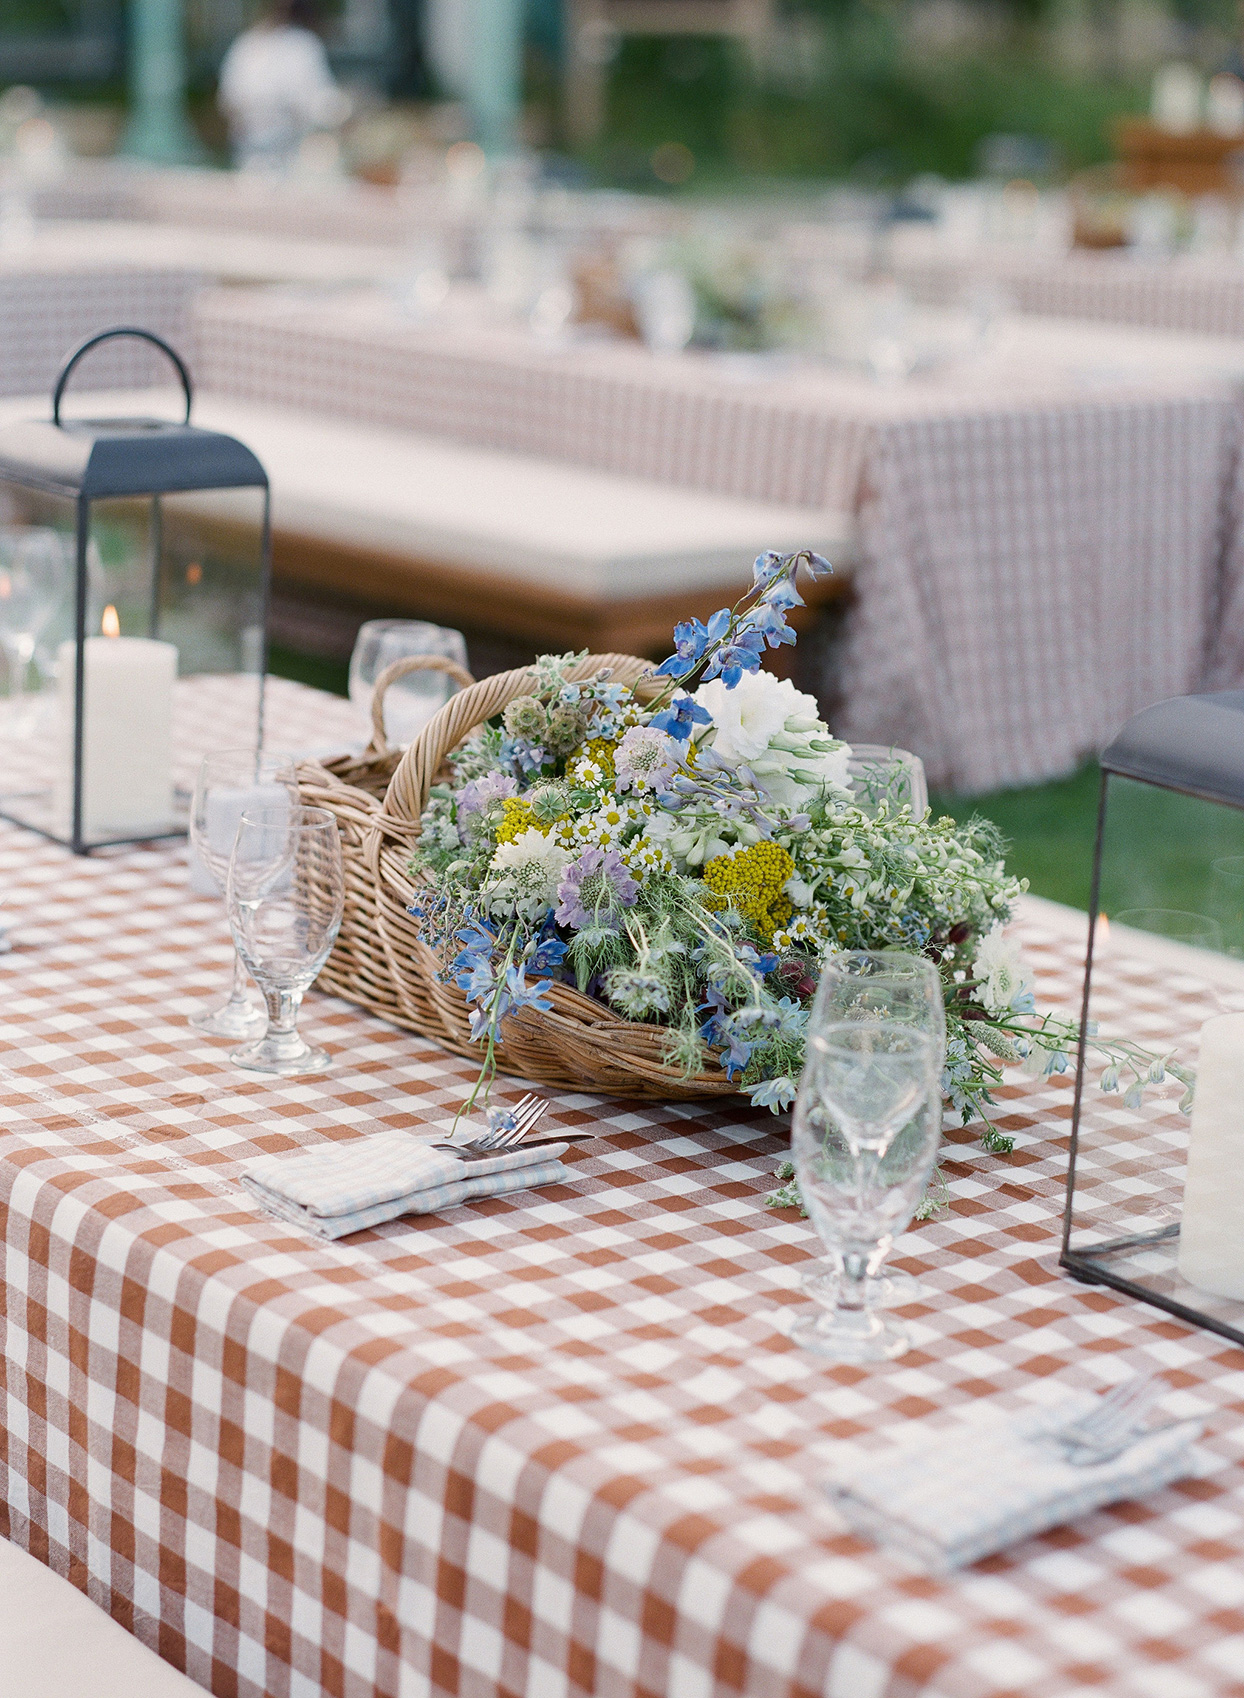 wicker basket of wildflowers centerpiece on checkered tablecloth at wedding welcome party